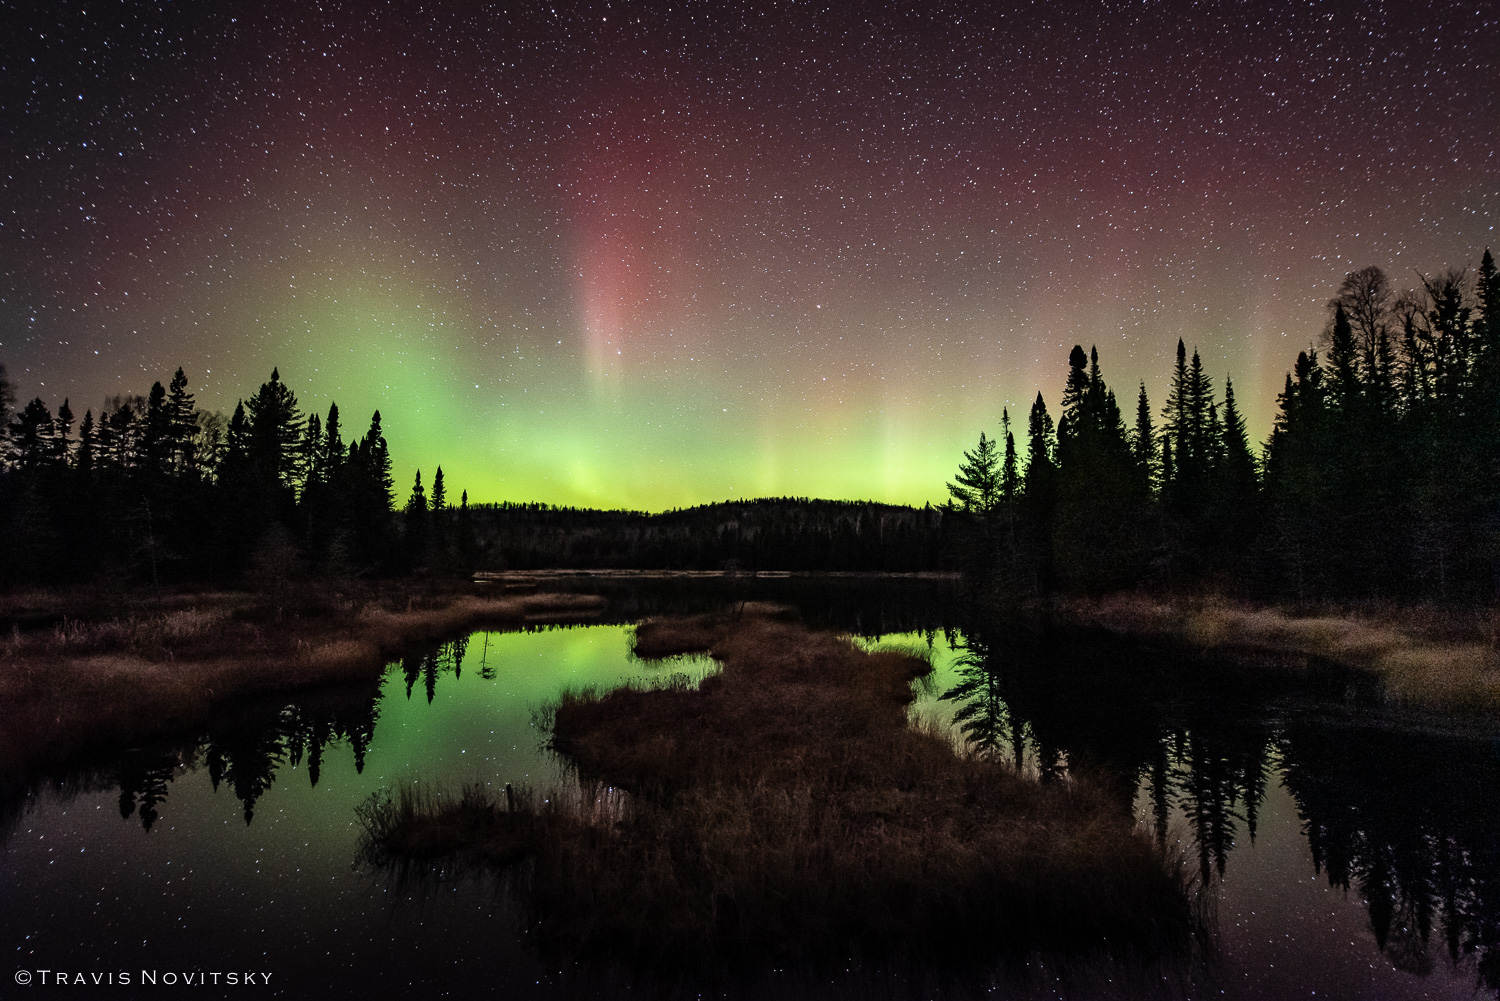 Aurora photo by Travis Novitsky